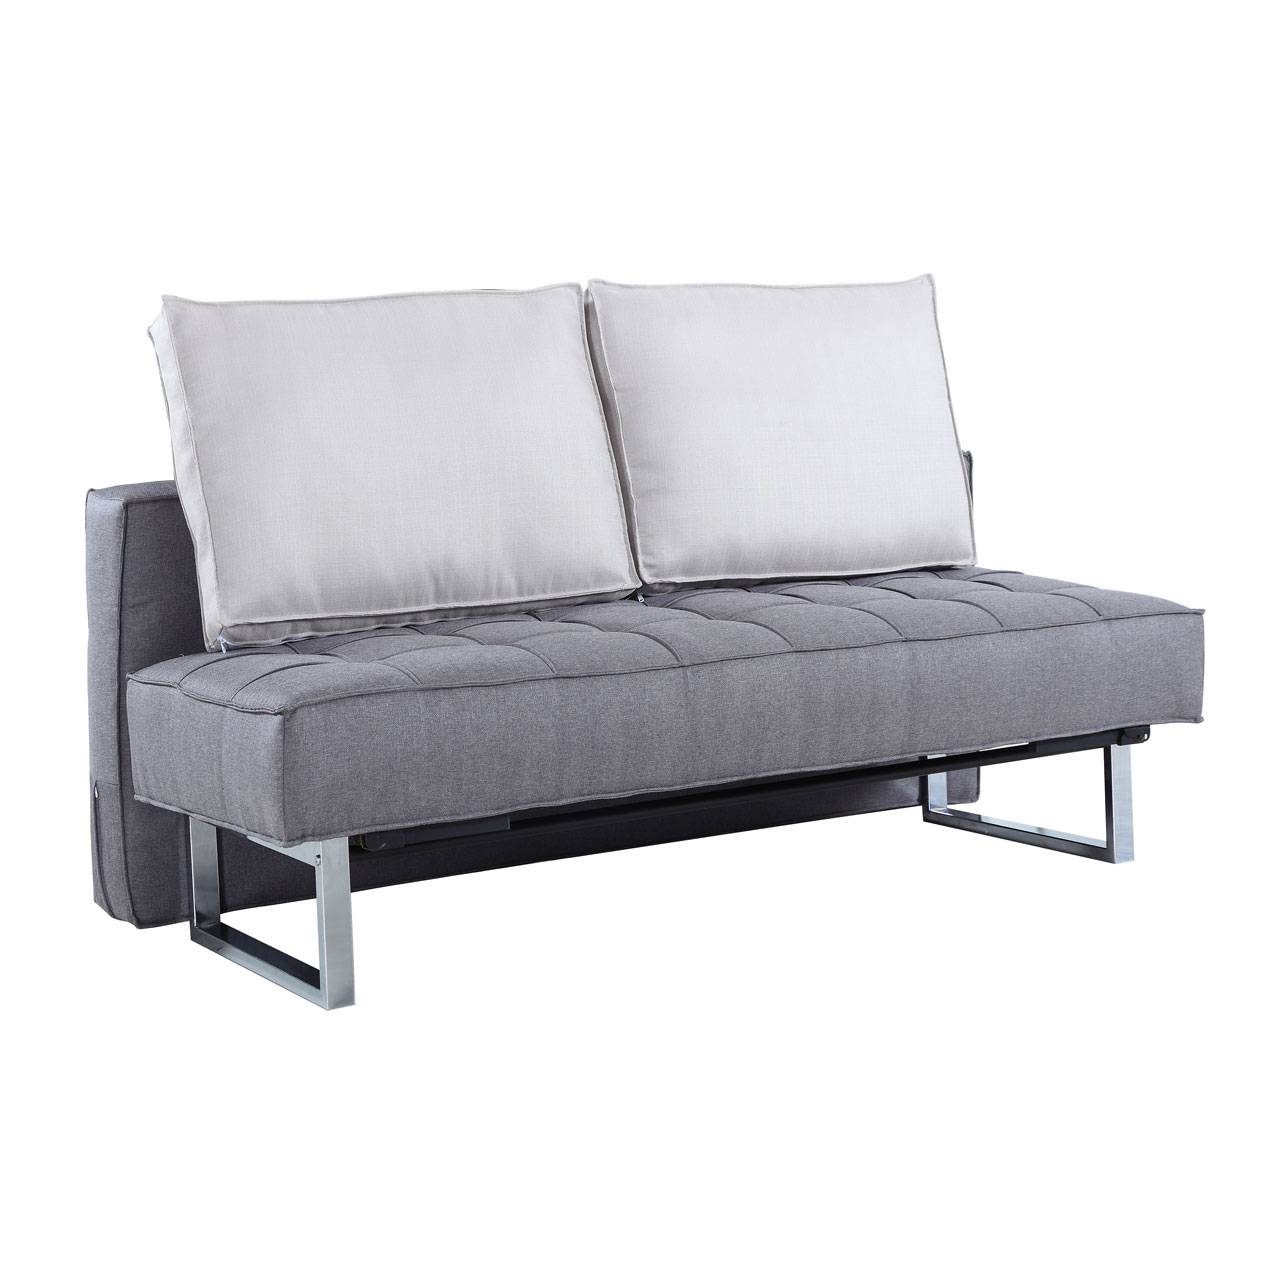 sanjay sofa bed furniture store manila philippines - urban concepts